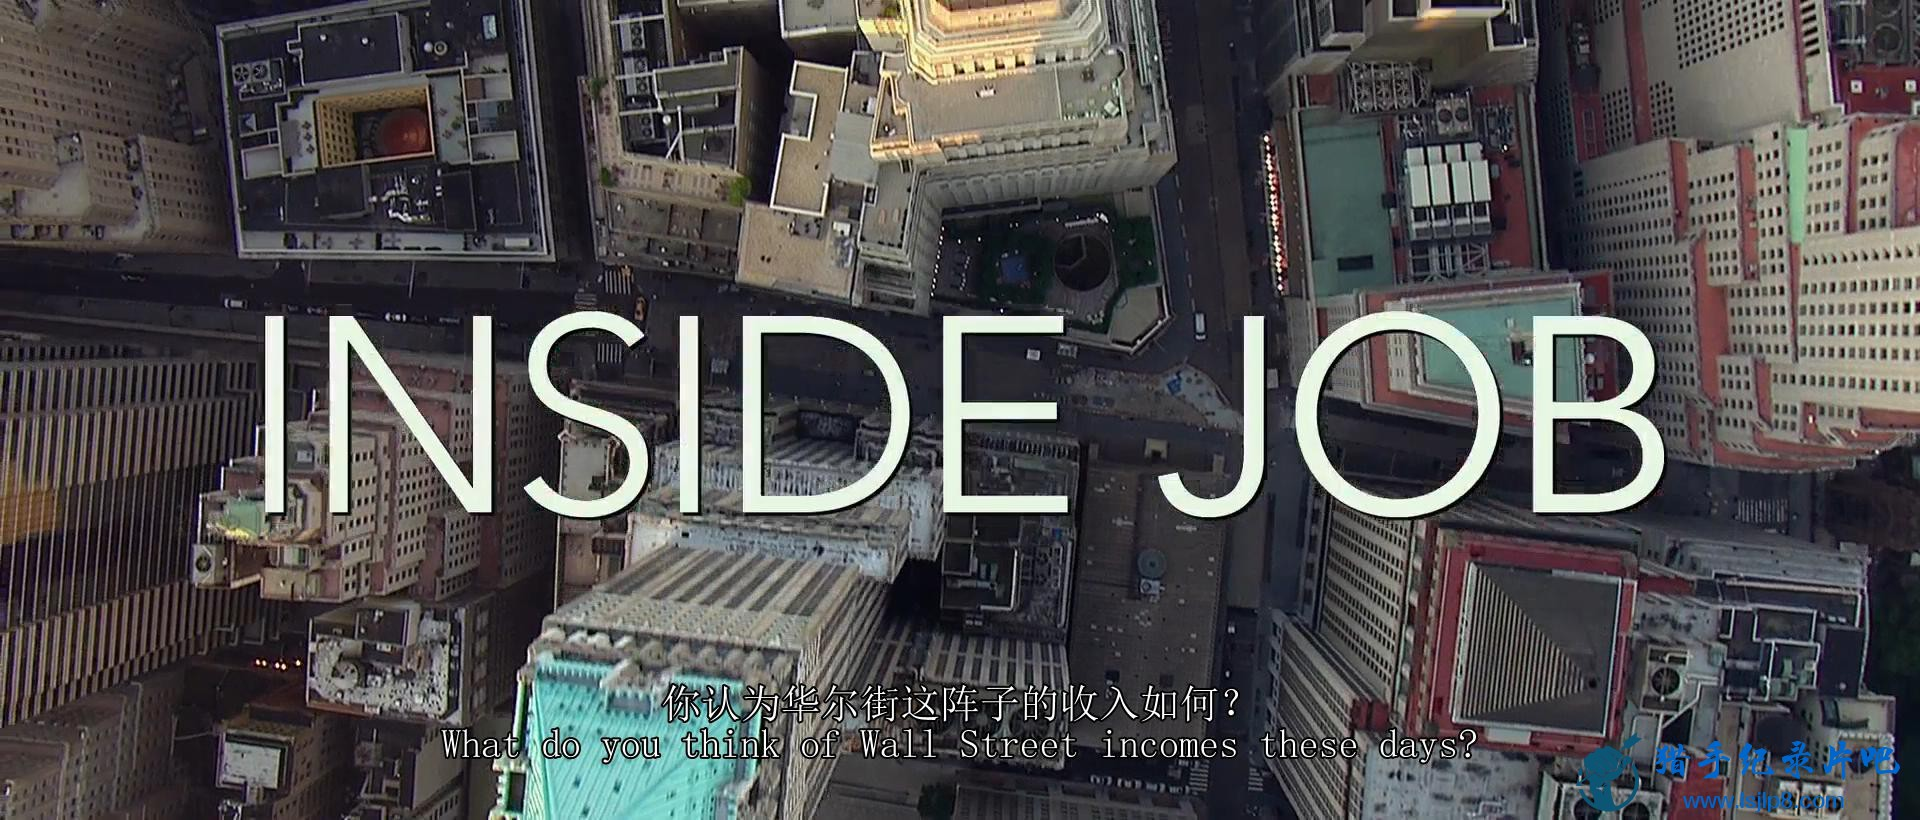 Inside.Job.2010.1080p.BluRay.H264.AAC-RARBG_20180311185242.JPG